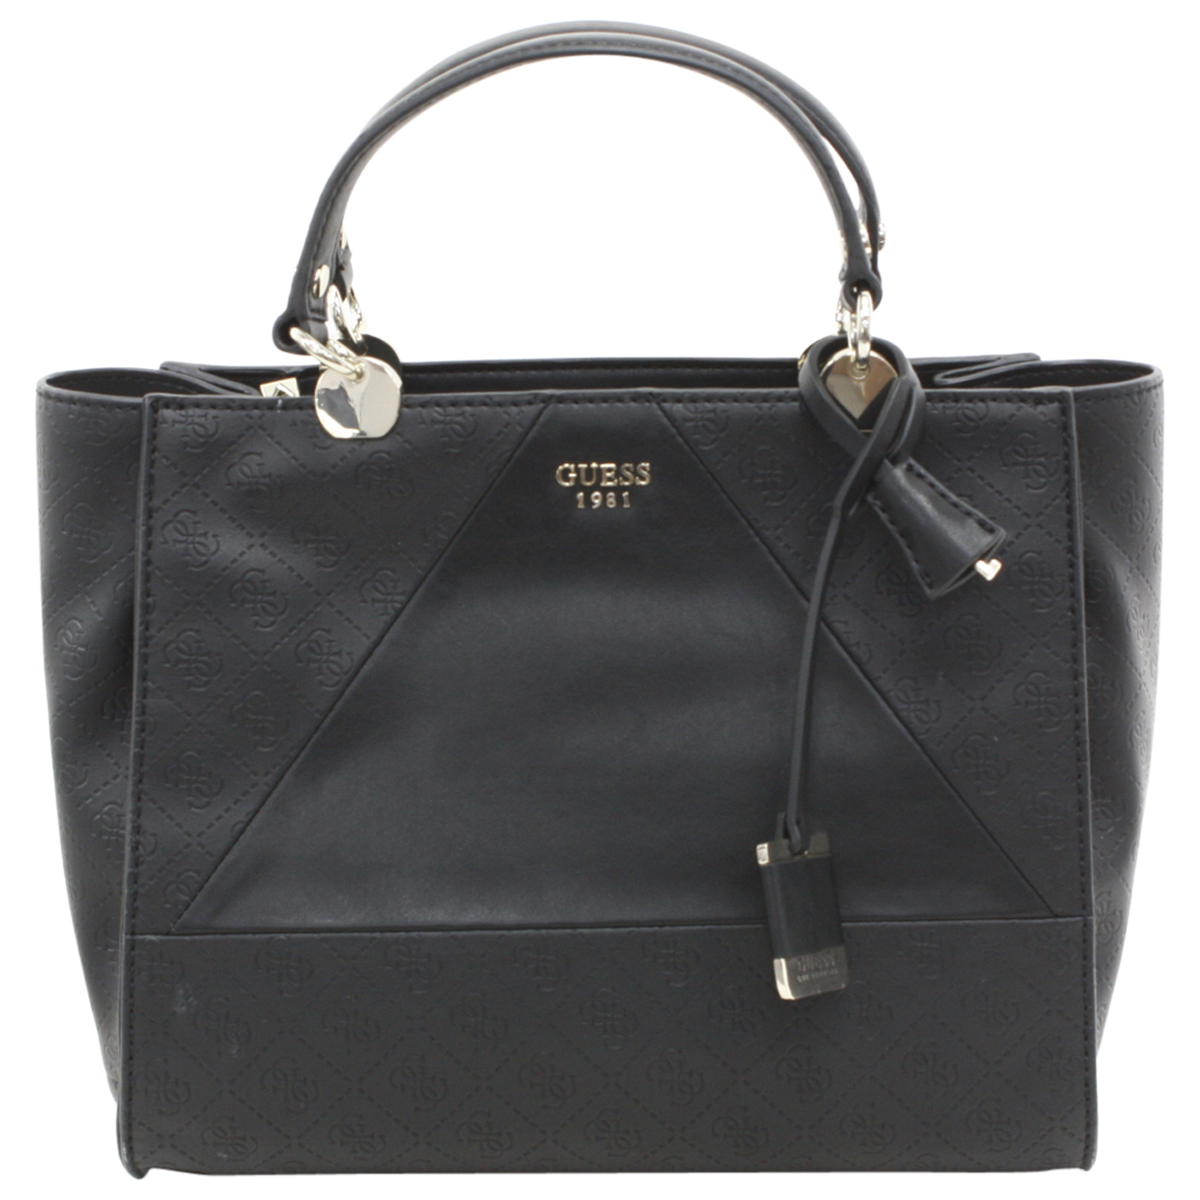 Mujer Luxe Negro Cammie Firma Estampado SatchelEbay Guess Bolso Qdthsr